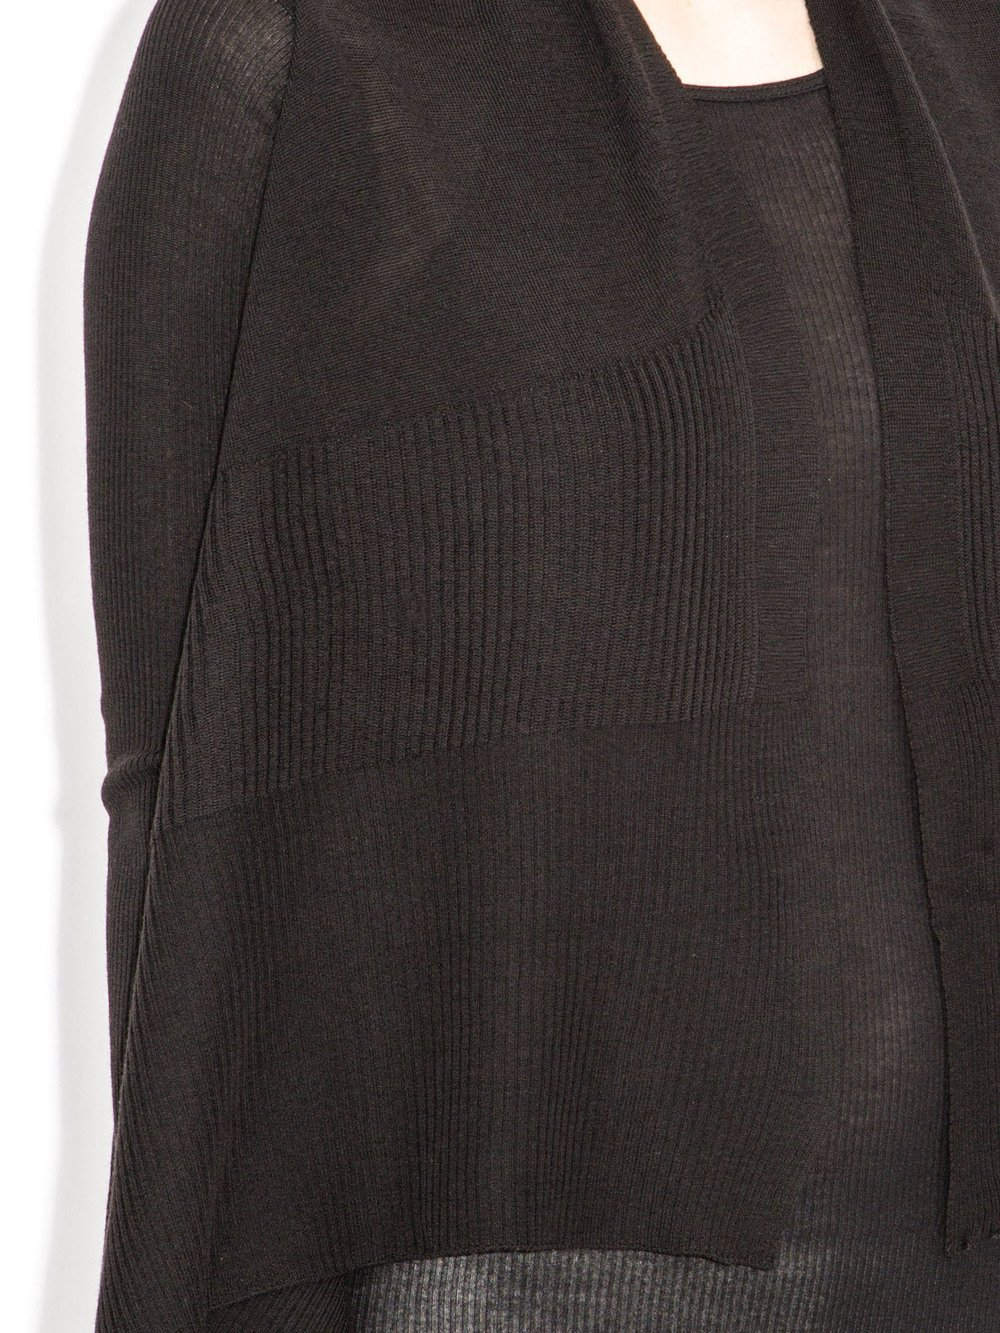 rick owens fw14 moody sweater